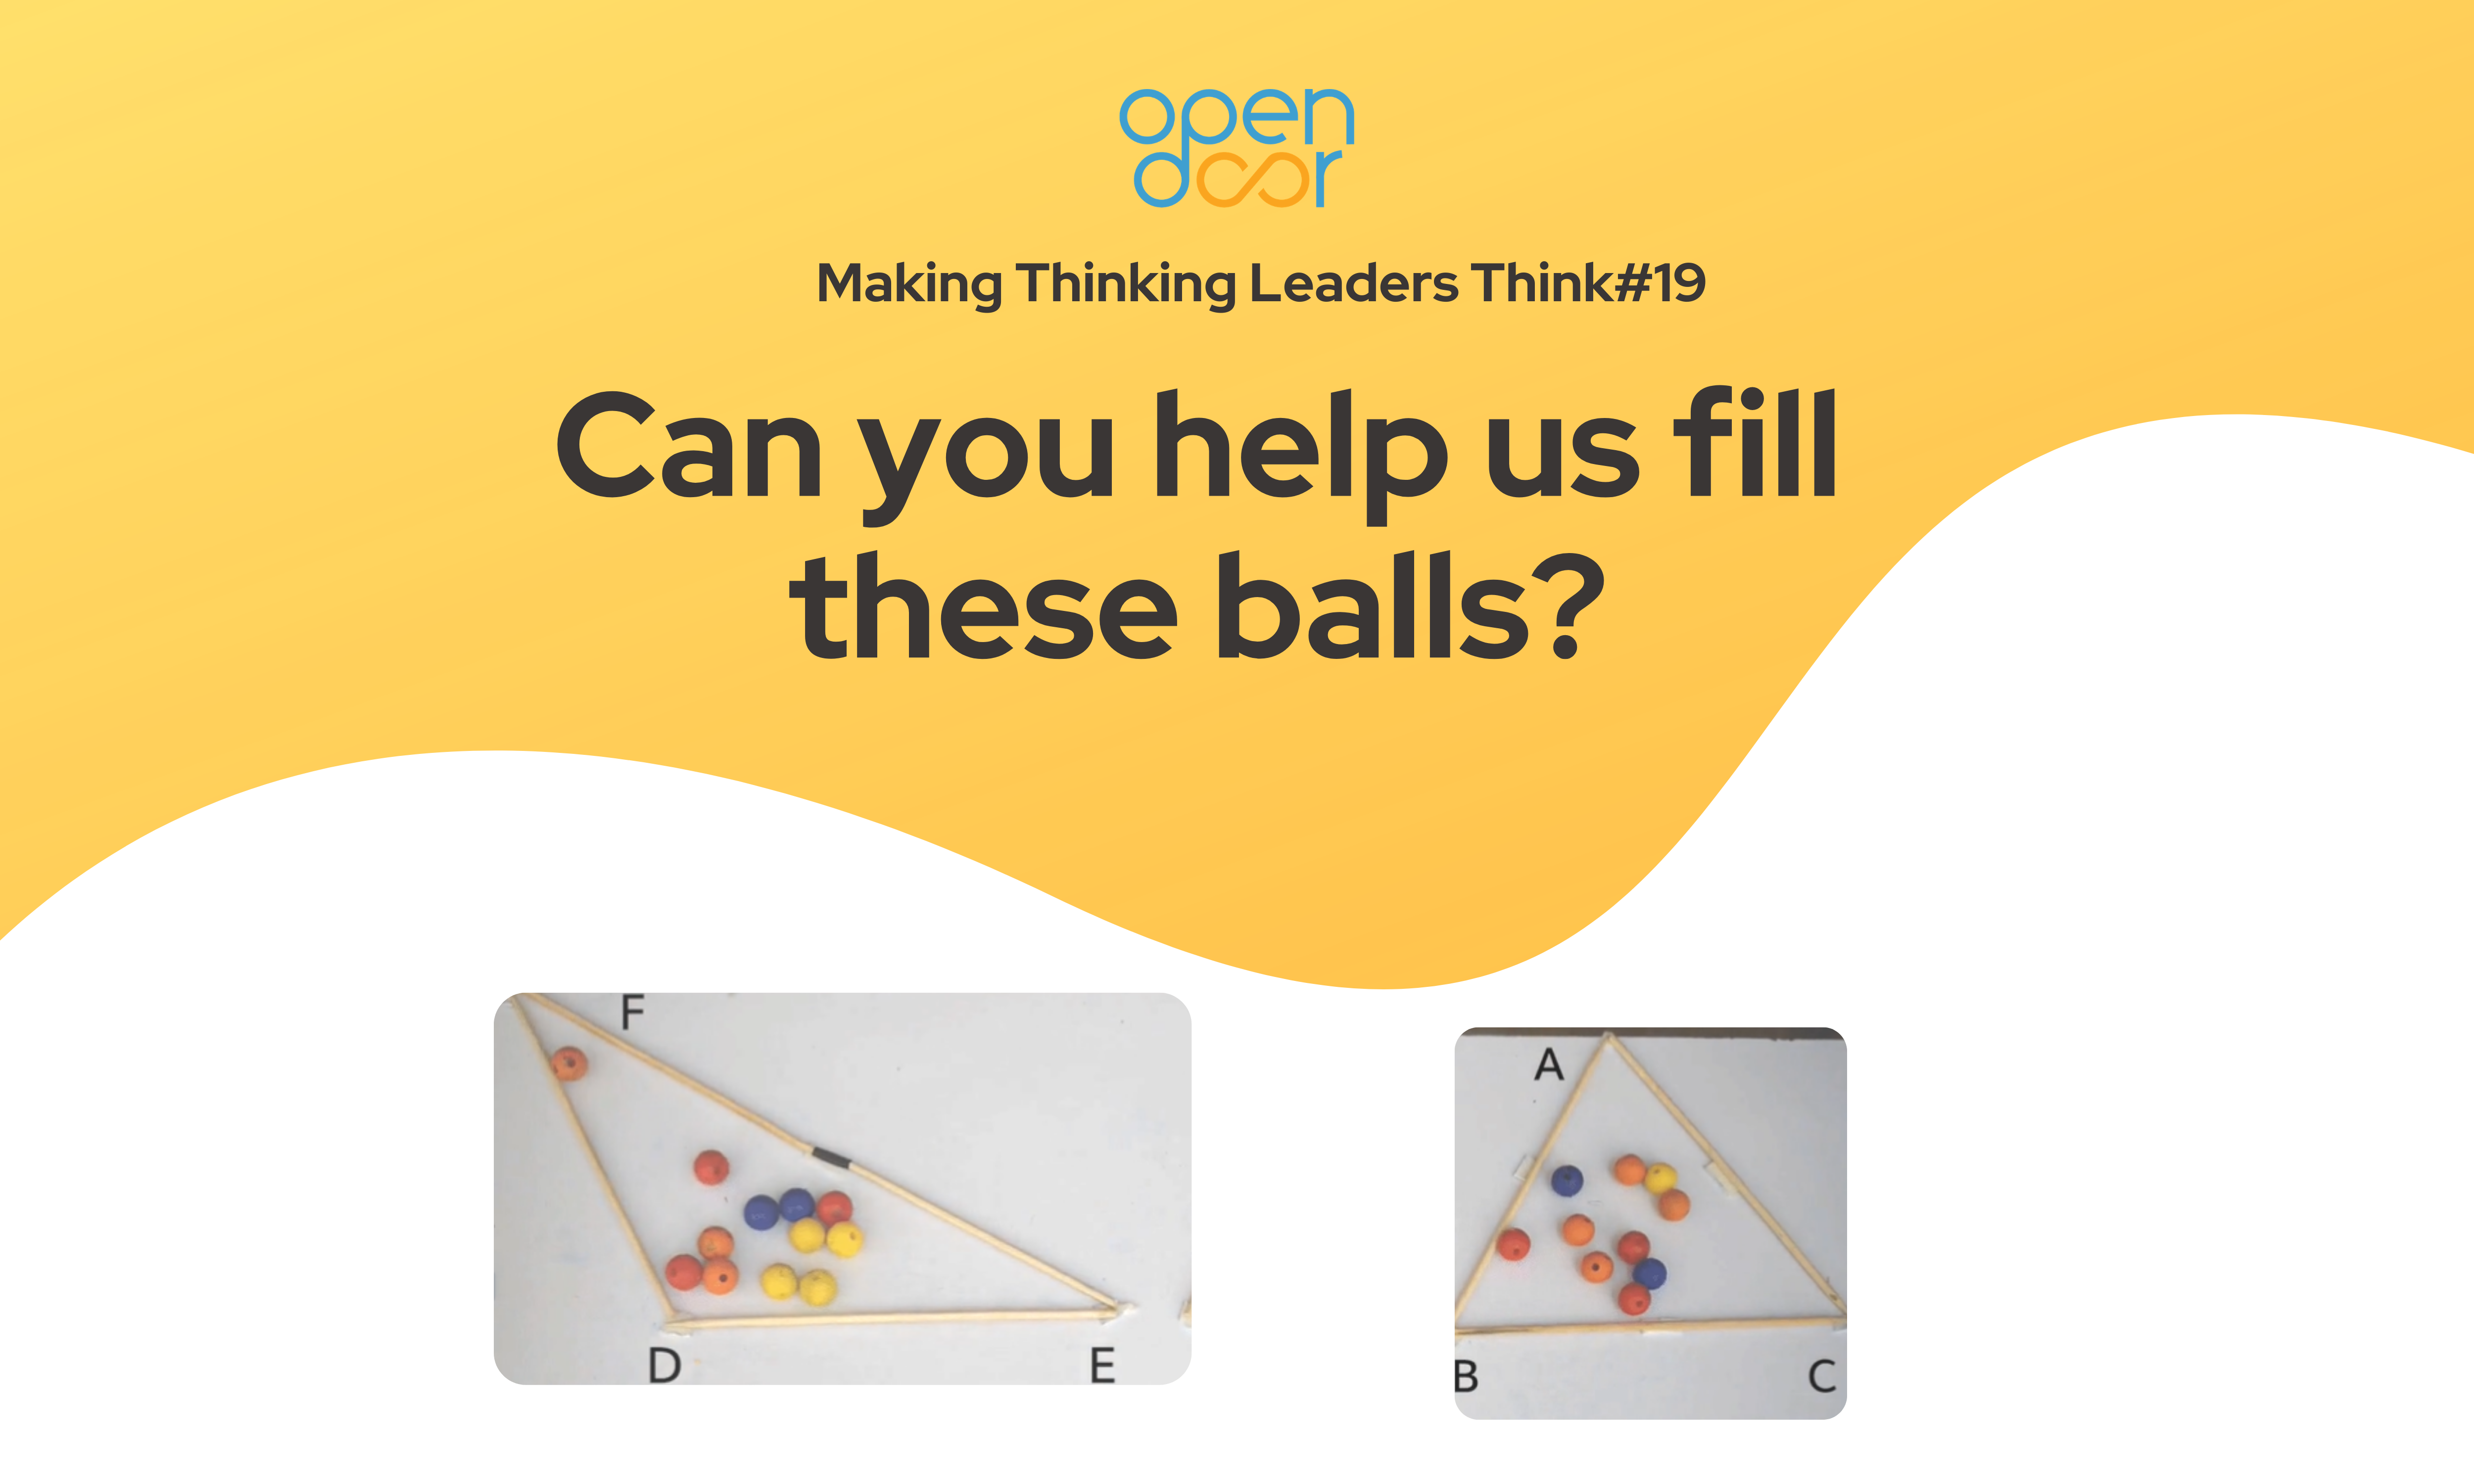 Q#19 Can you help us fill these balls? Winners Announced